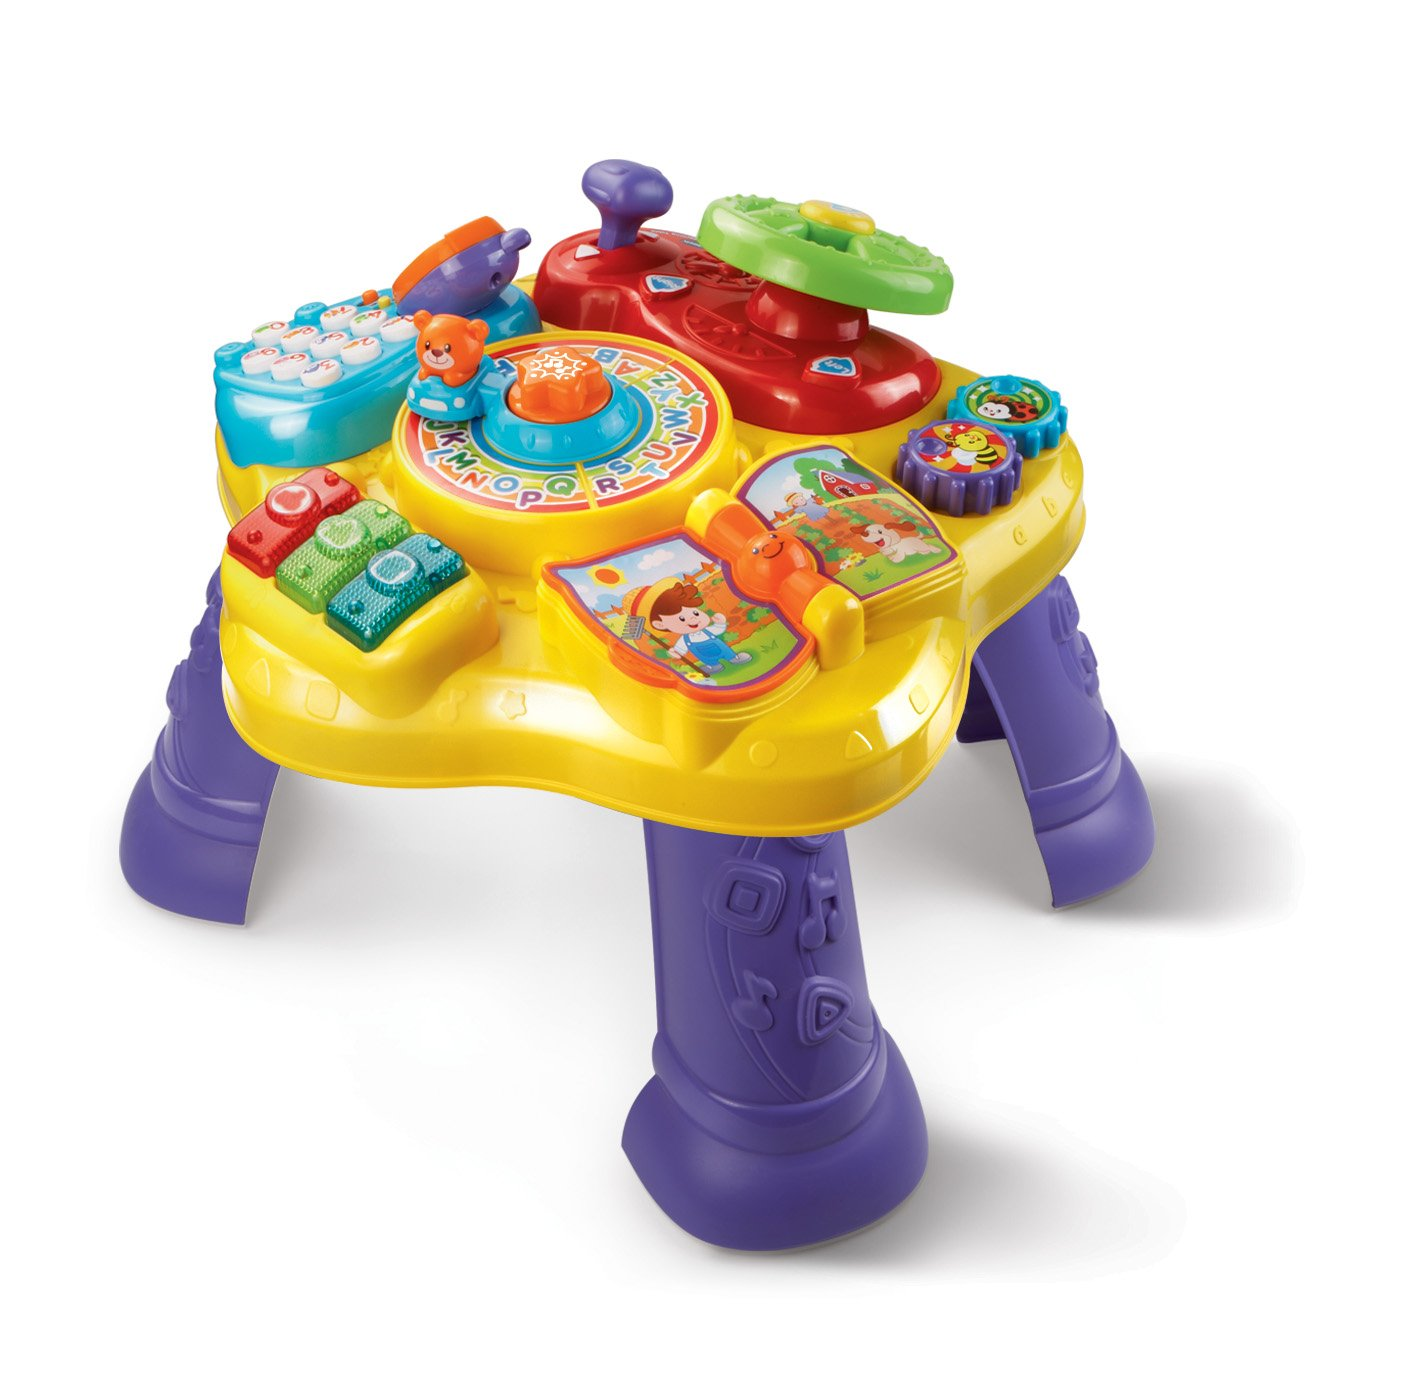 Inflatable Ball Pit Vtech Magic Star Learning Table